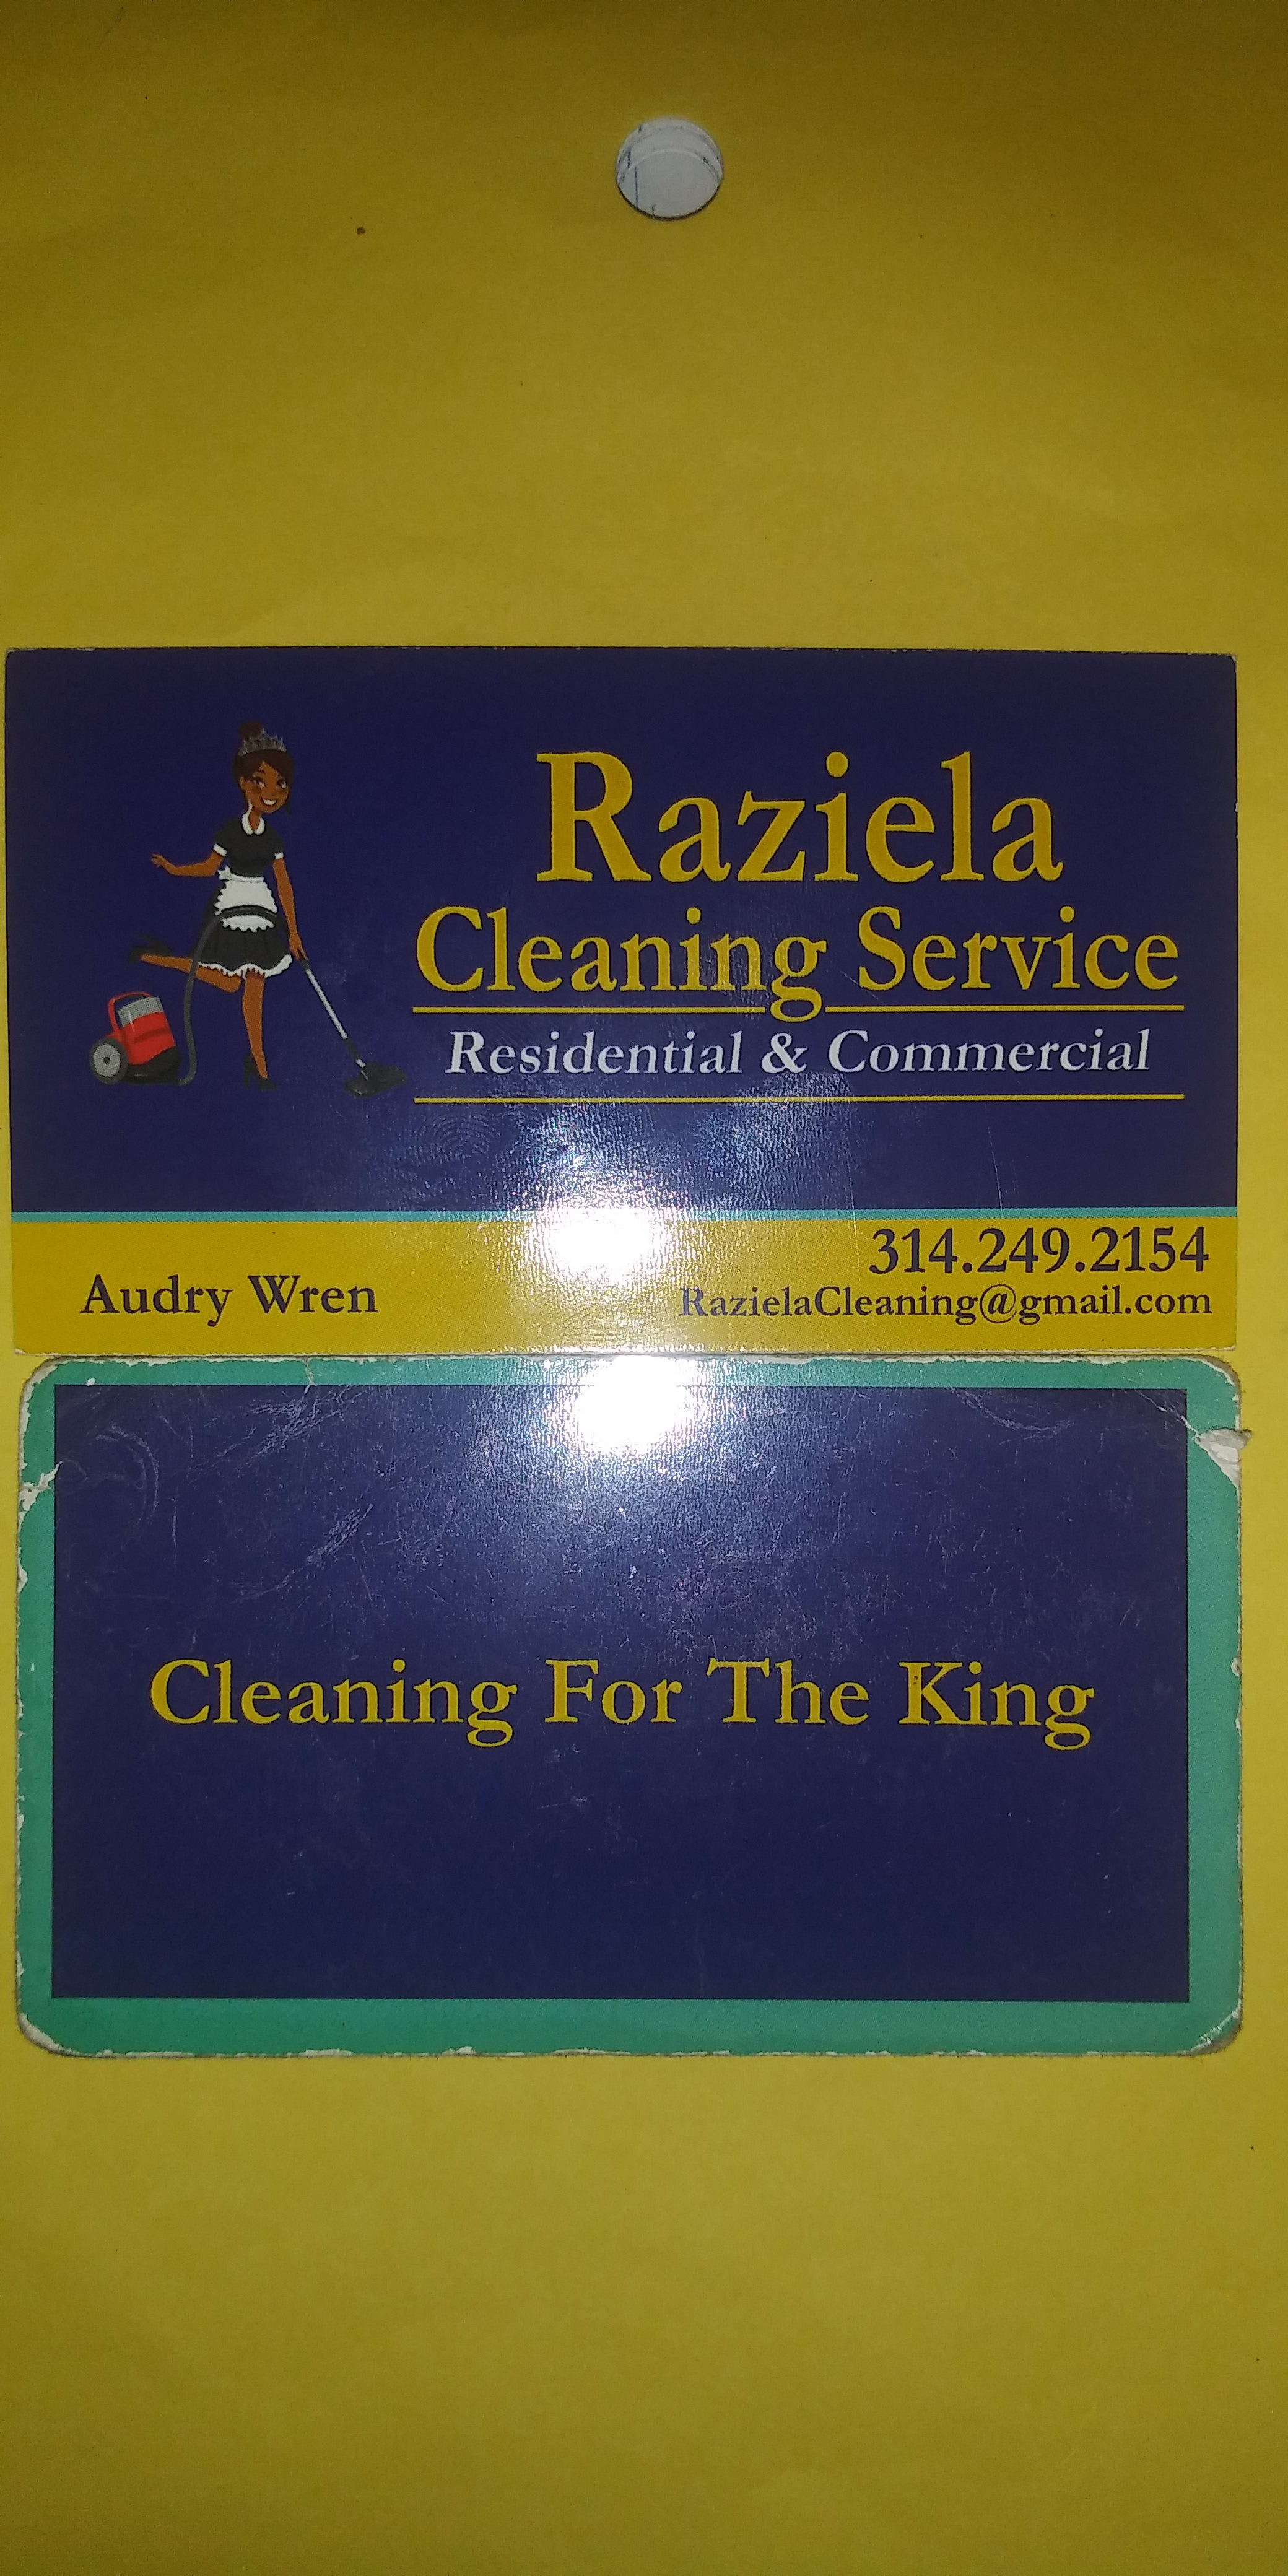 Raziela Cleaning Service